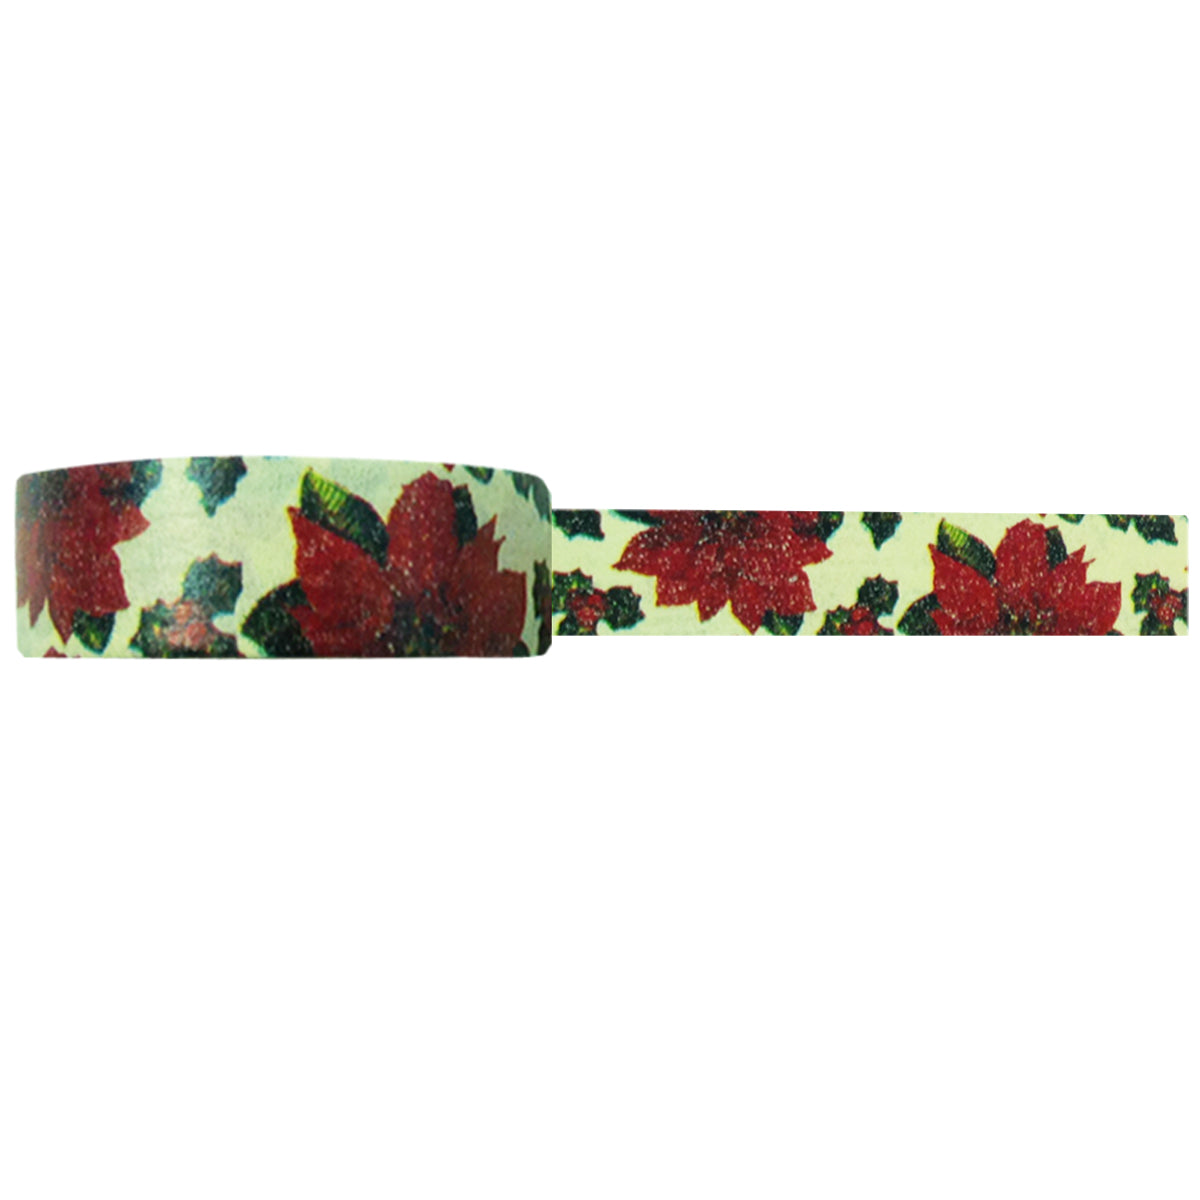 Wrapables Floral & Nature Japanese Washi Masking Tape